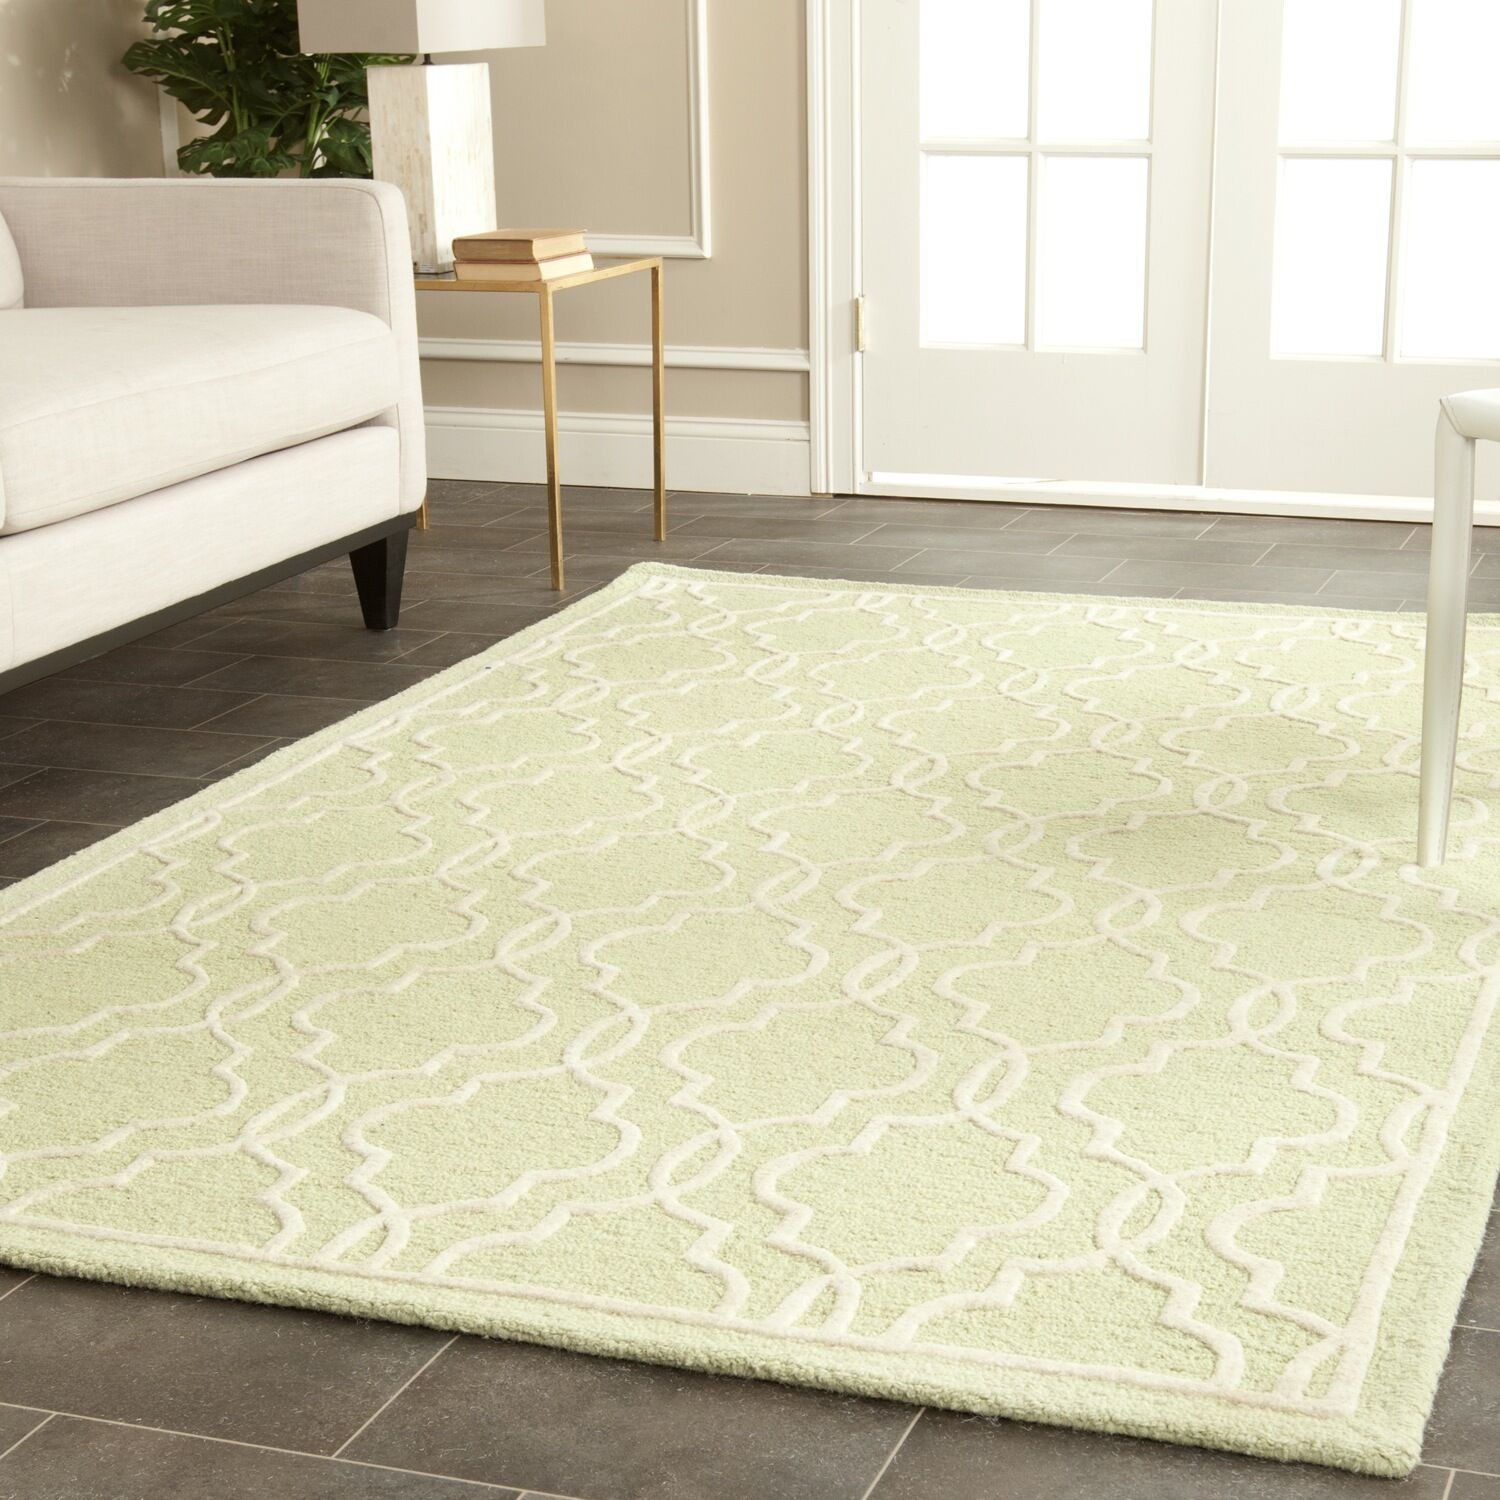 Martins Hand-Tufted Wool Light Green/Ivory Area Rug Rug Size: Rectangle 6' x 9'